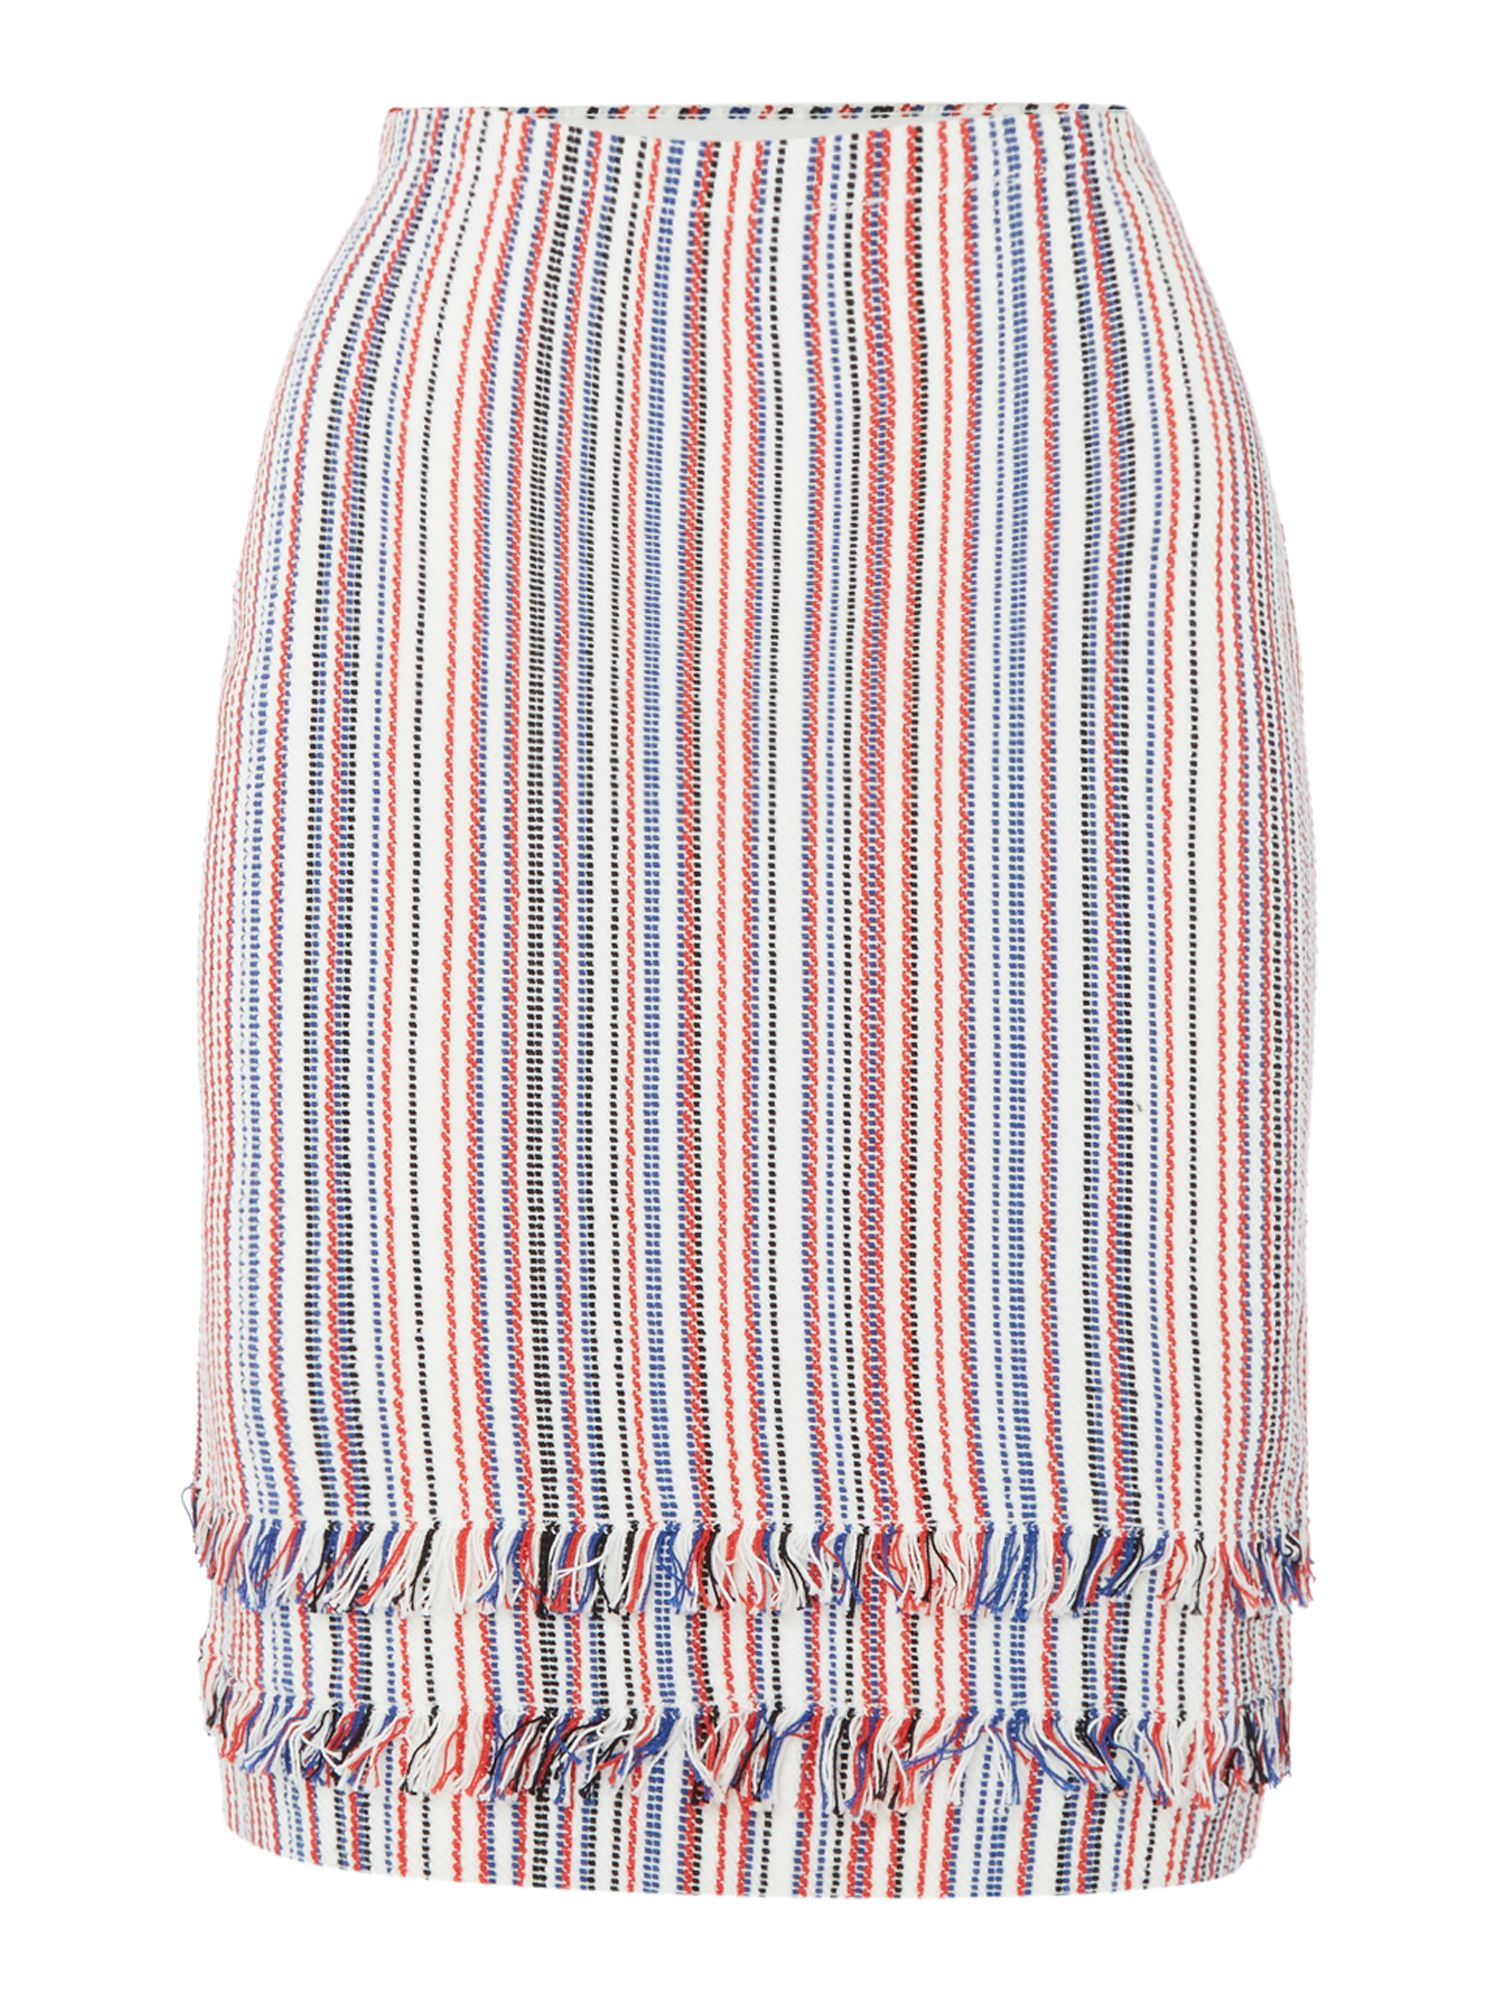 Hugo Boss Knitted striped pencil skirt, Multi-Coloured